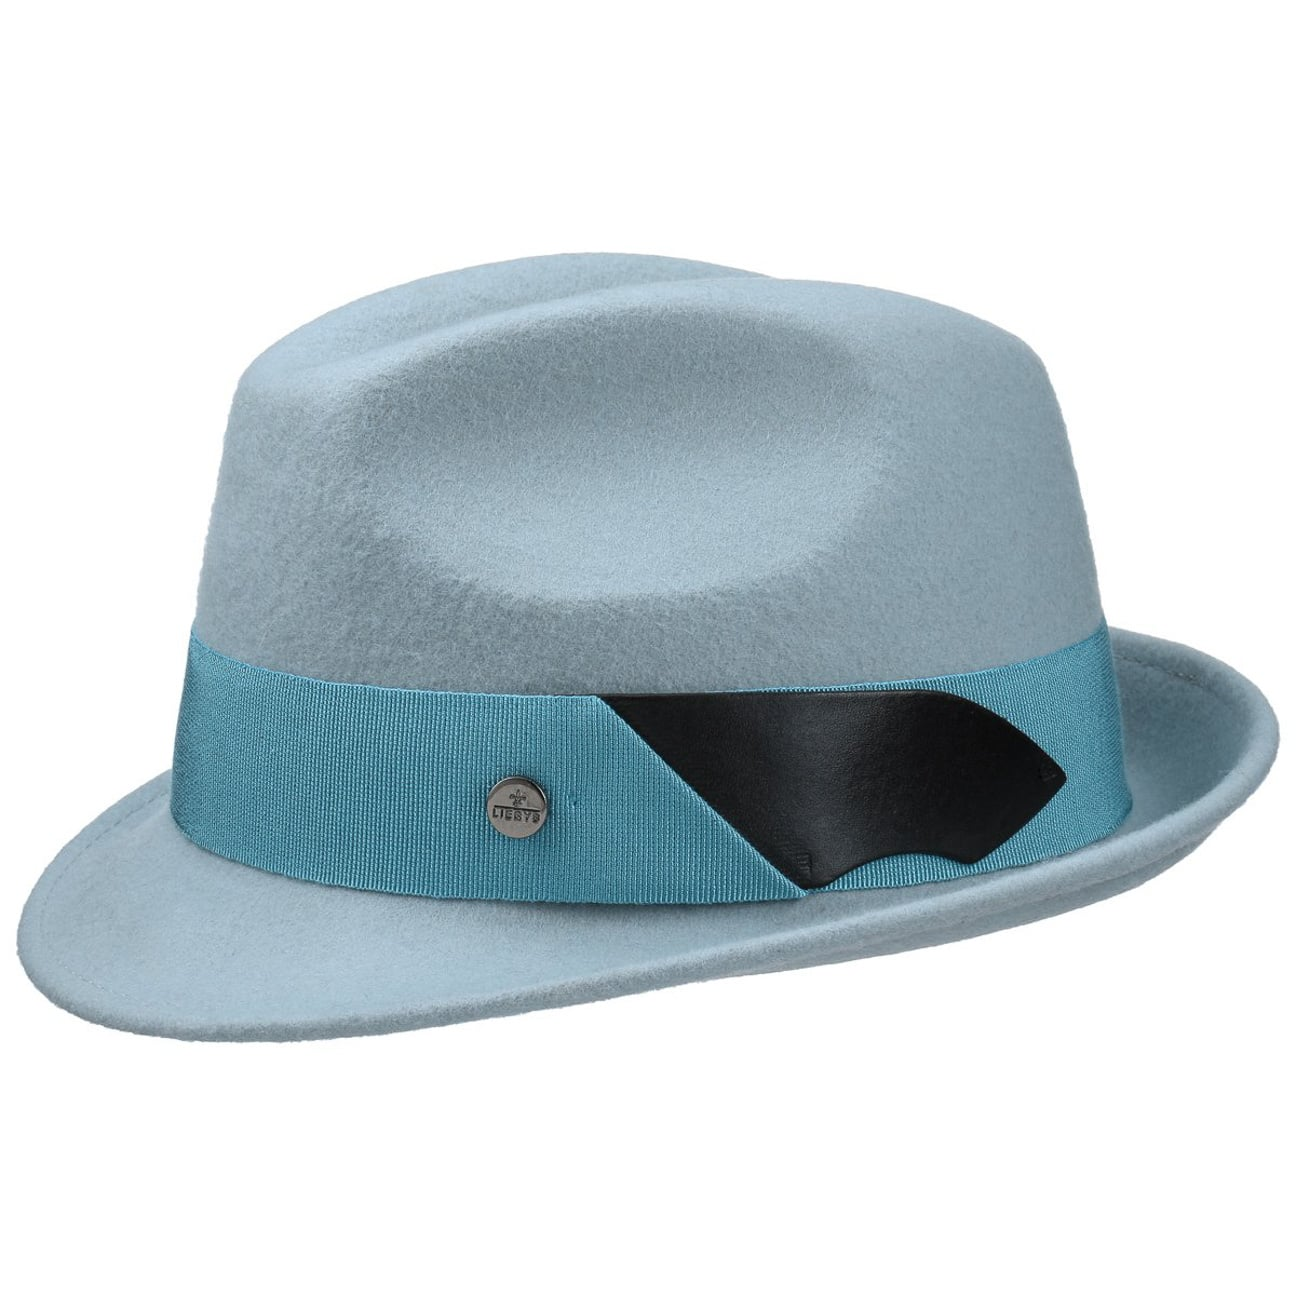 Sale Good Selling Pastellina Trilby Hat by Lierys Trilby hats Lierys Low Shipping Cheap Online Official Online hct1xsmM